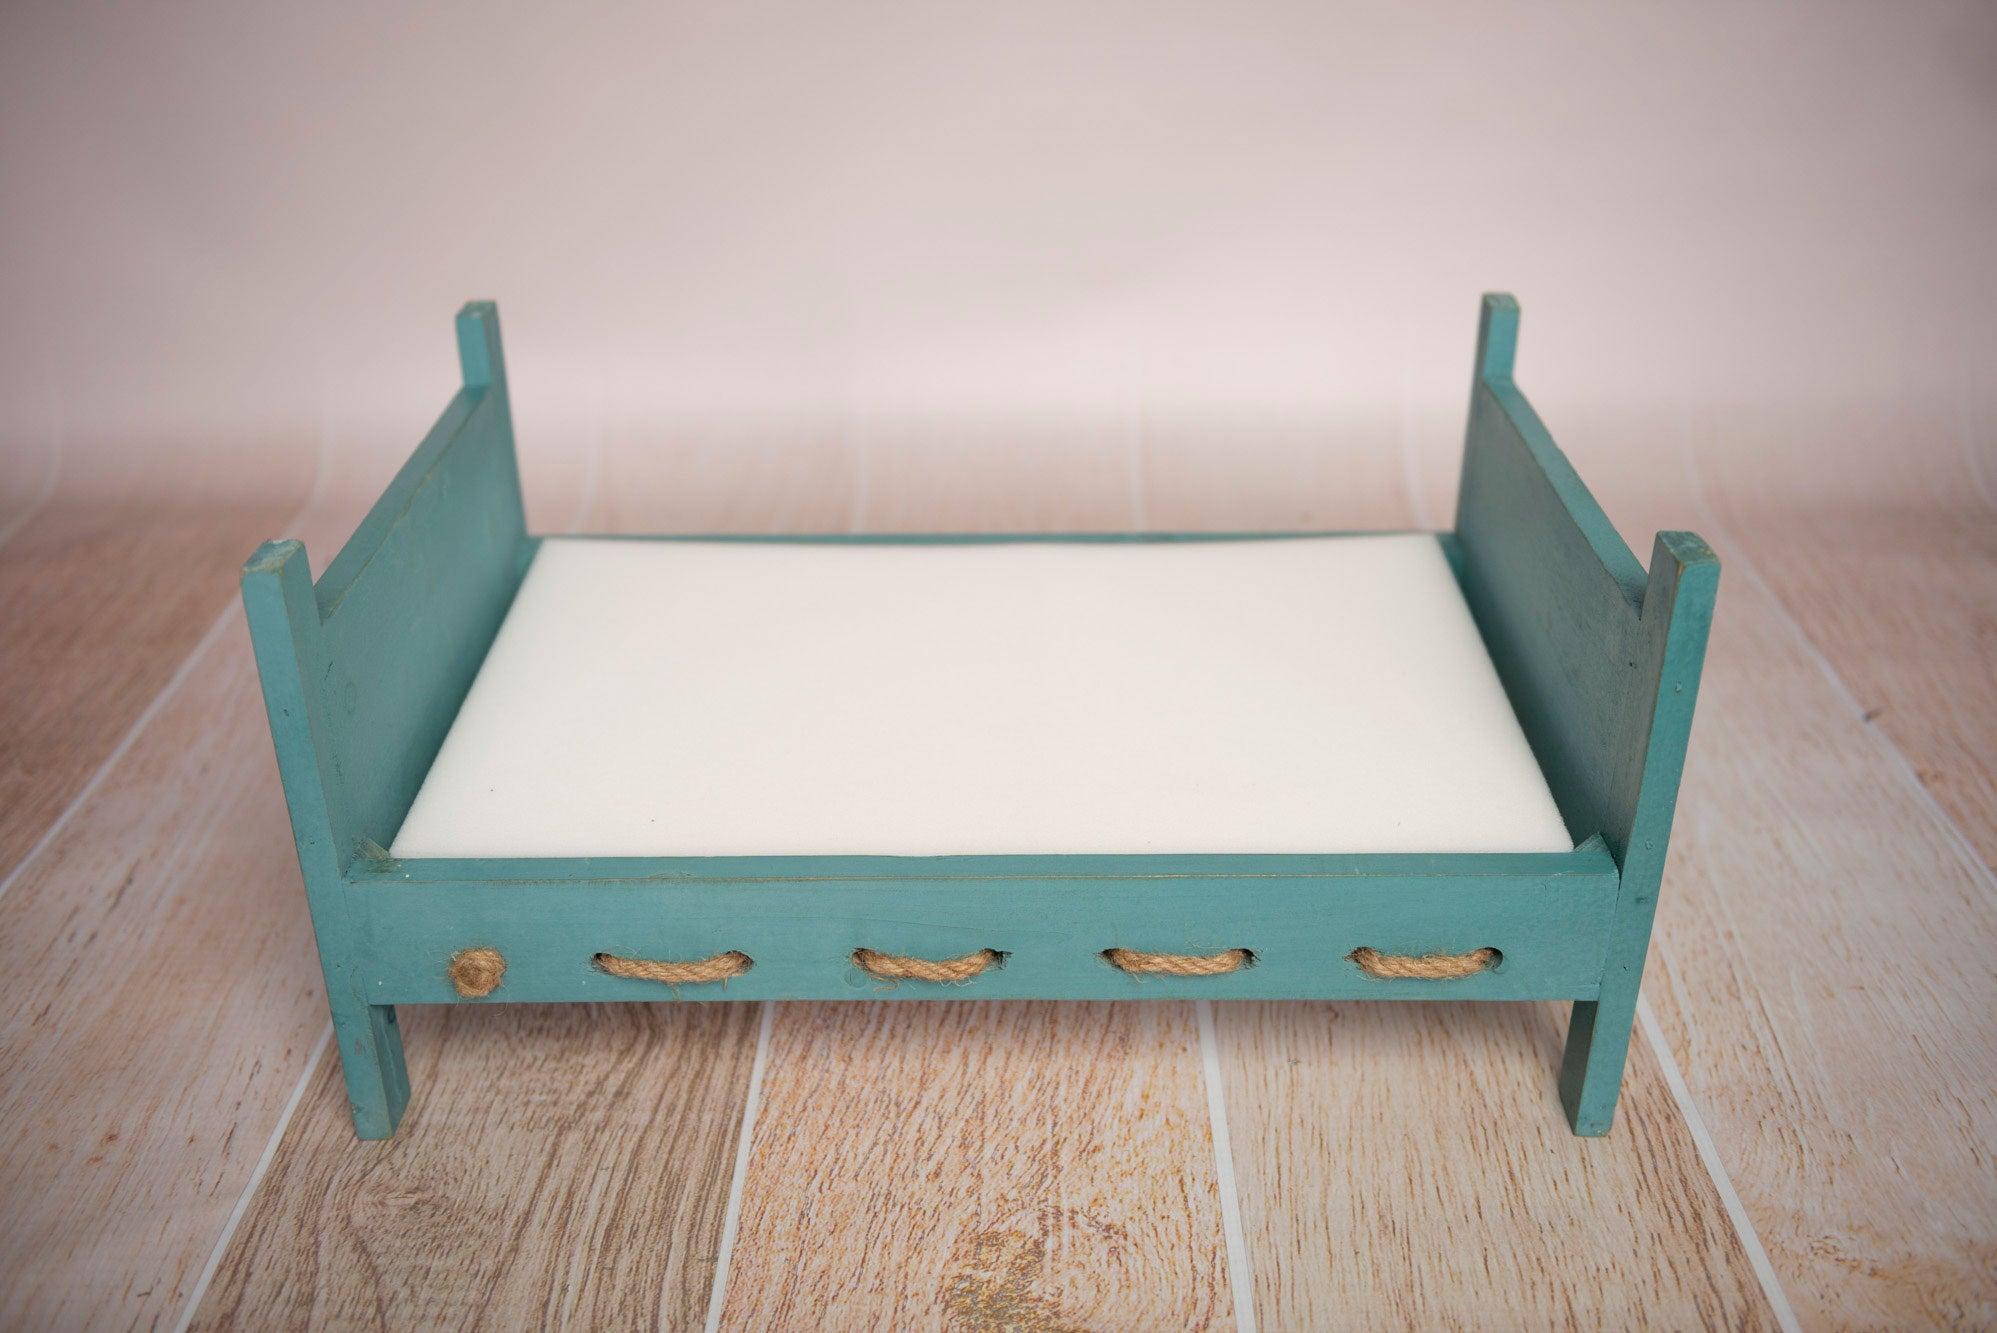 Rustic Daybed with Rope Springs - Greenish Blue (DISCONTINUED)